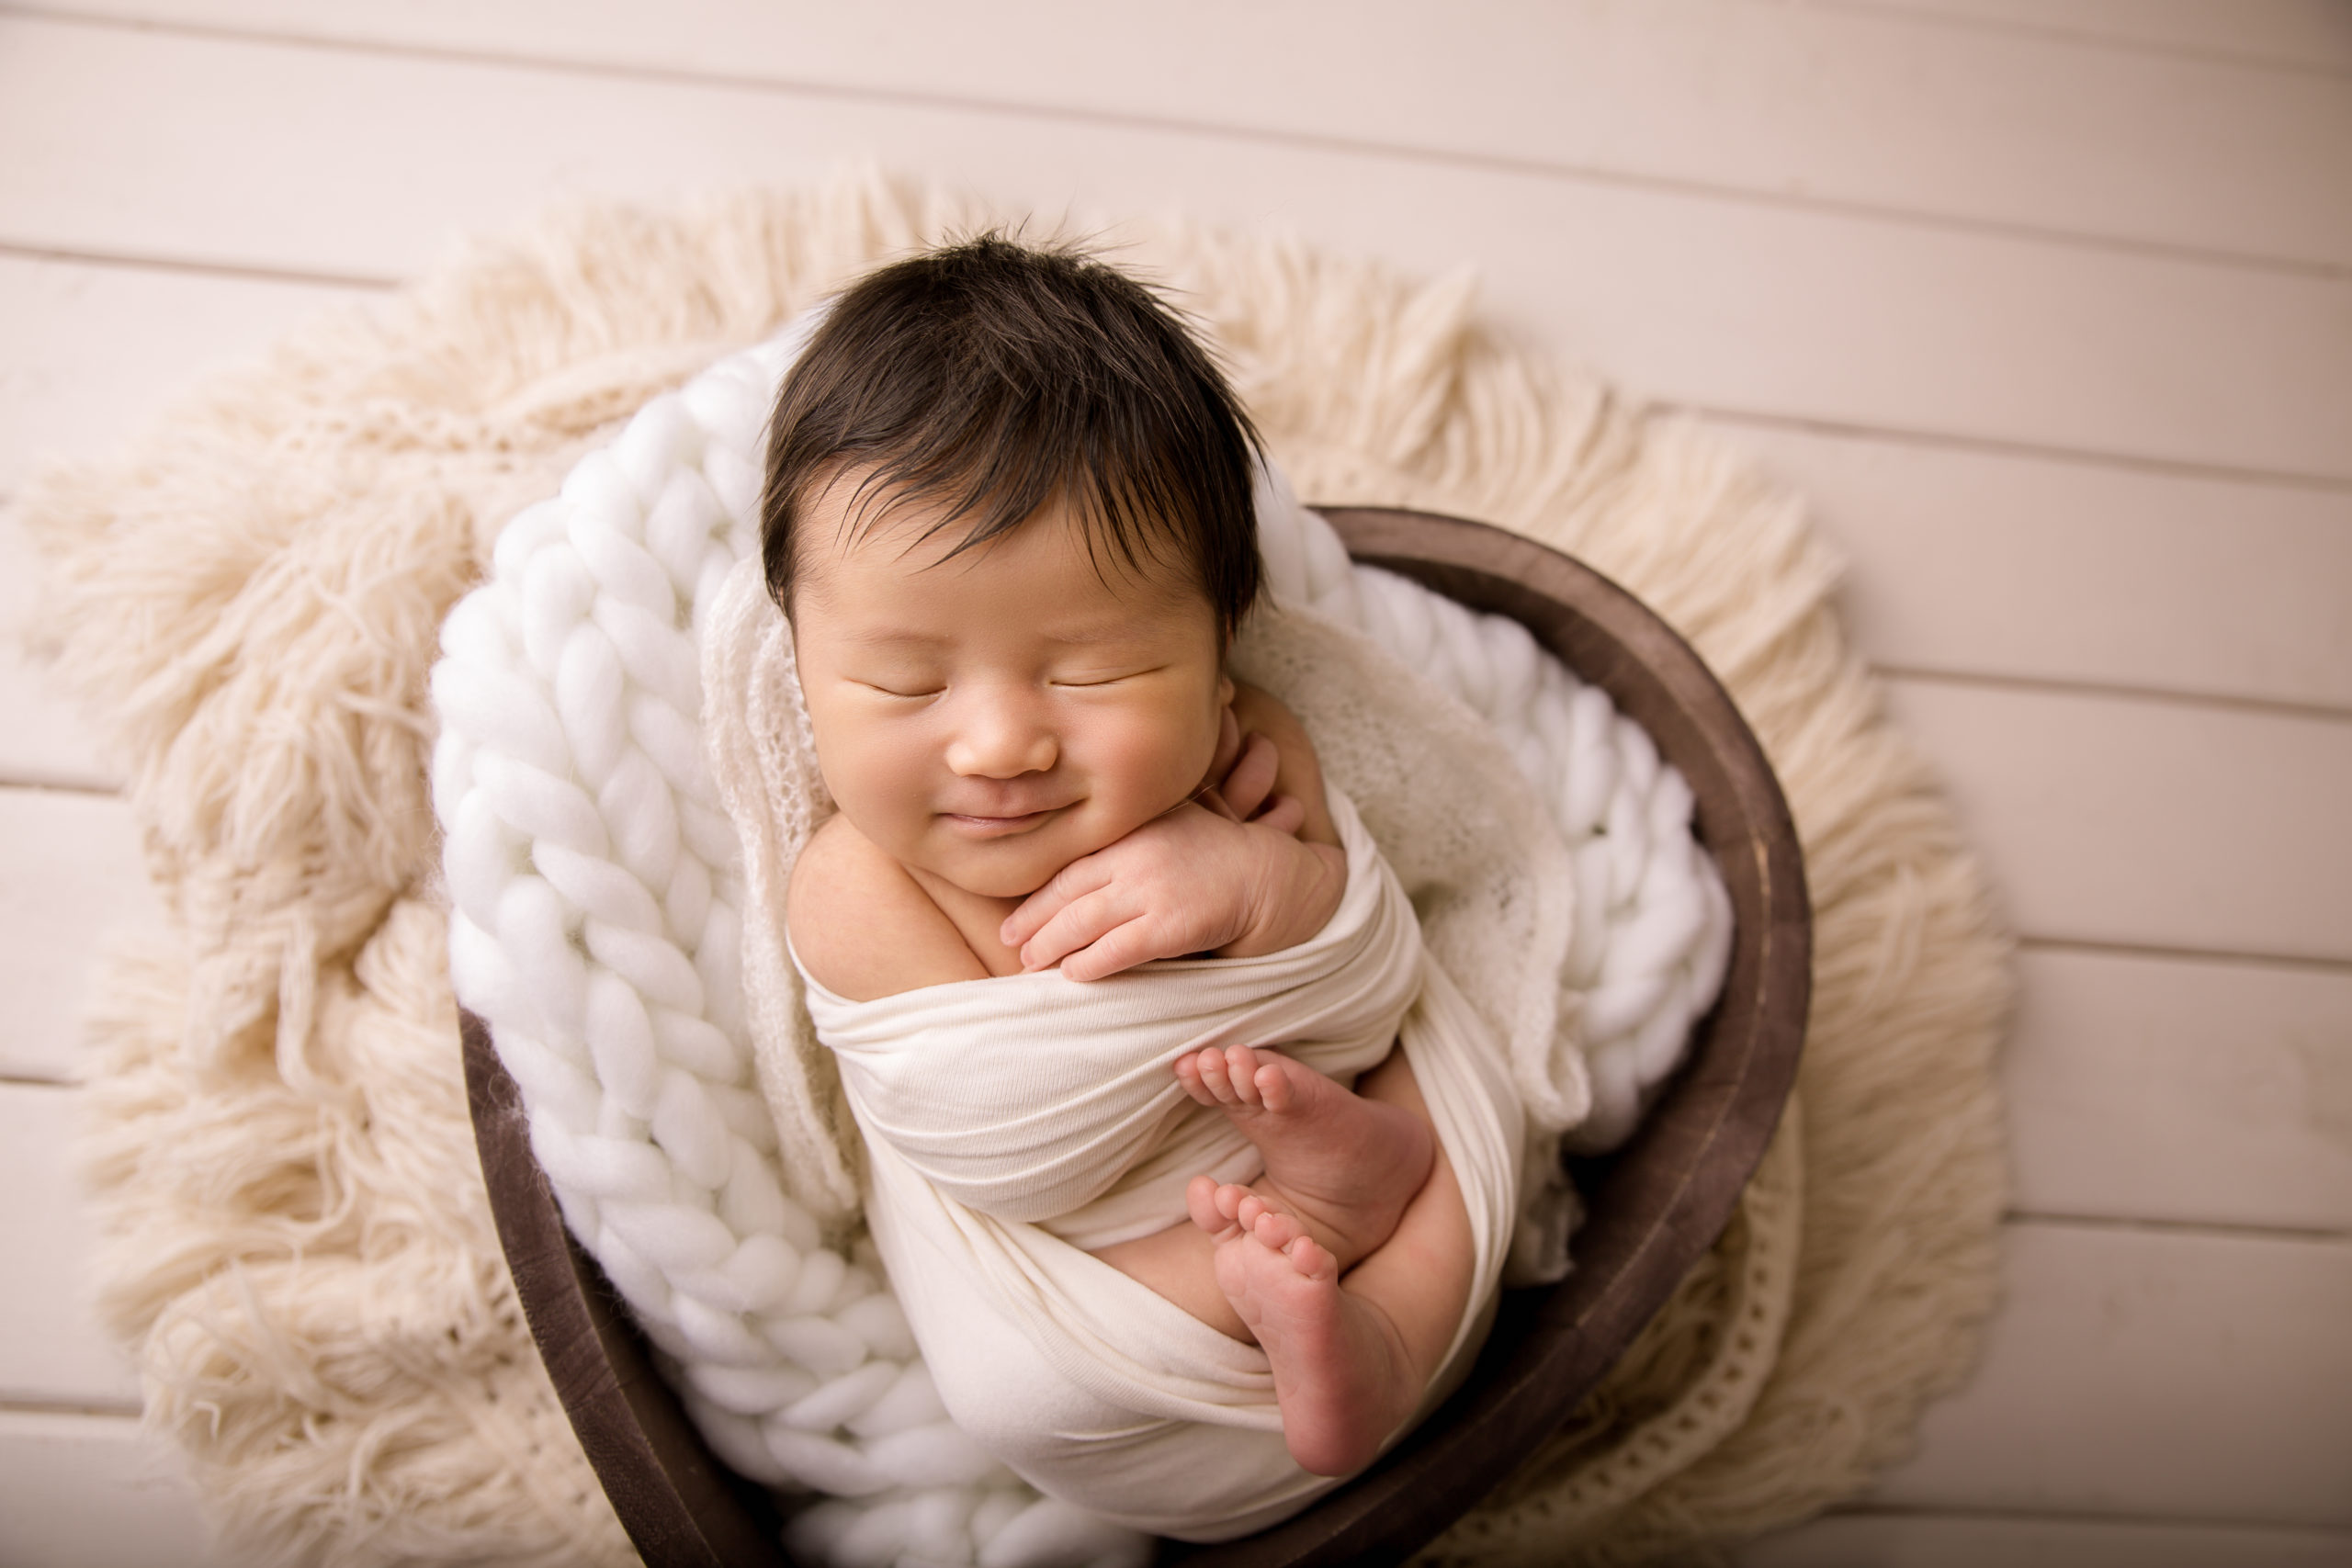 newborn photo session baby photoshoot wrapped in a heart bowl and smiling newborn photo studio near Kingston